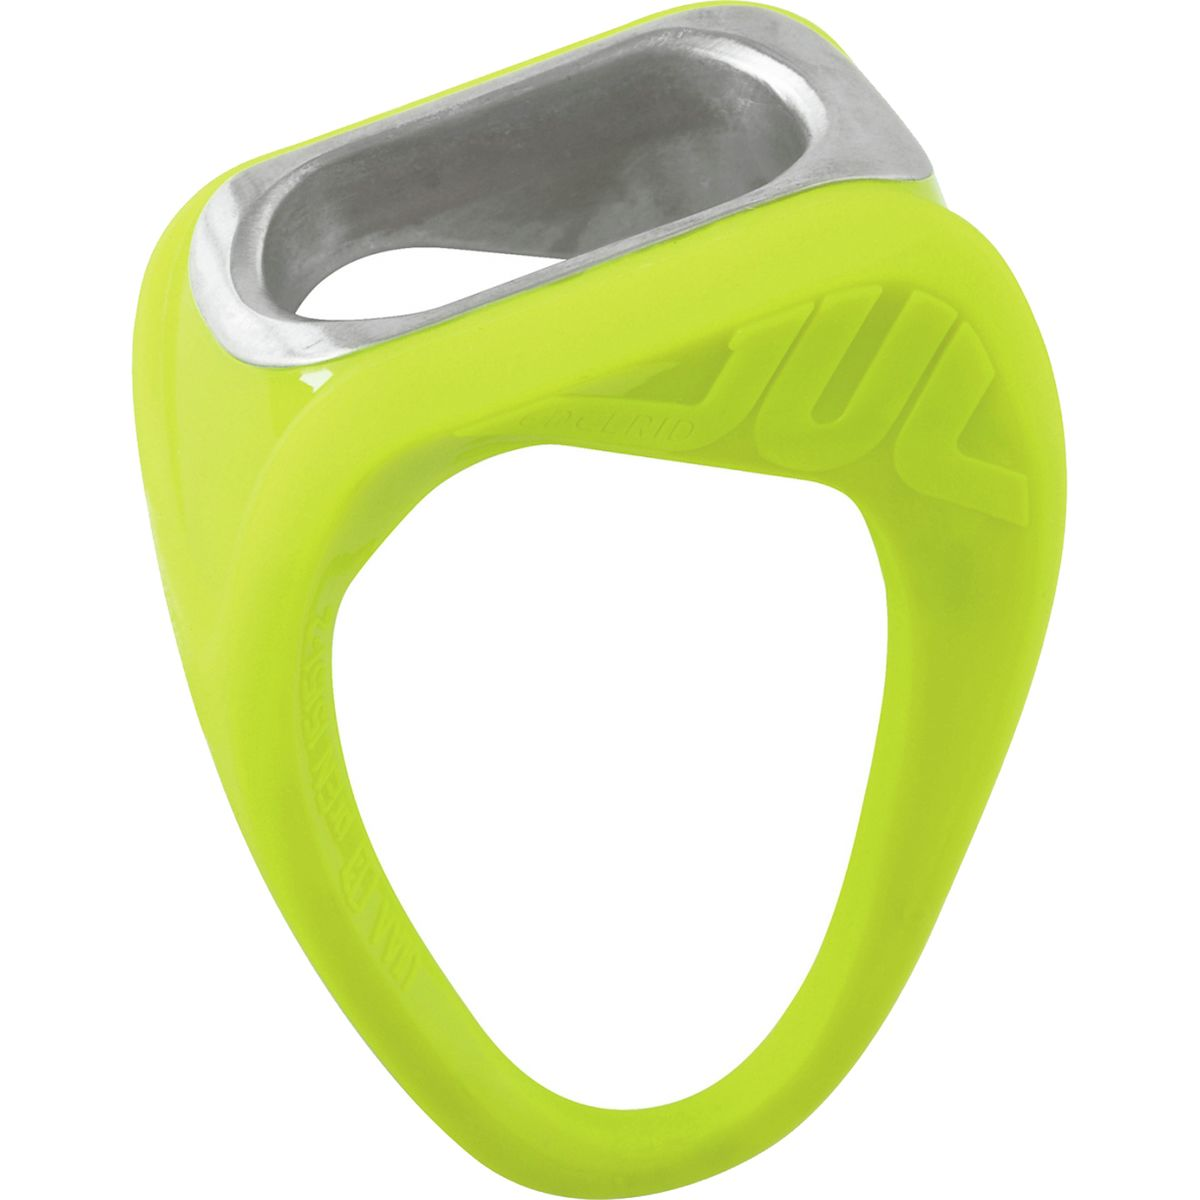 photo: Edelrid Jul belay/rappel device